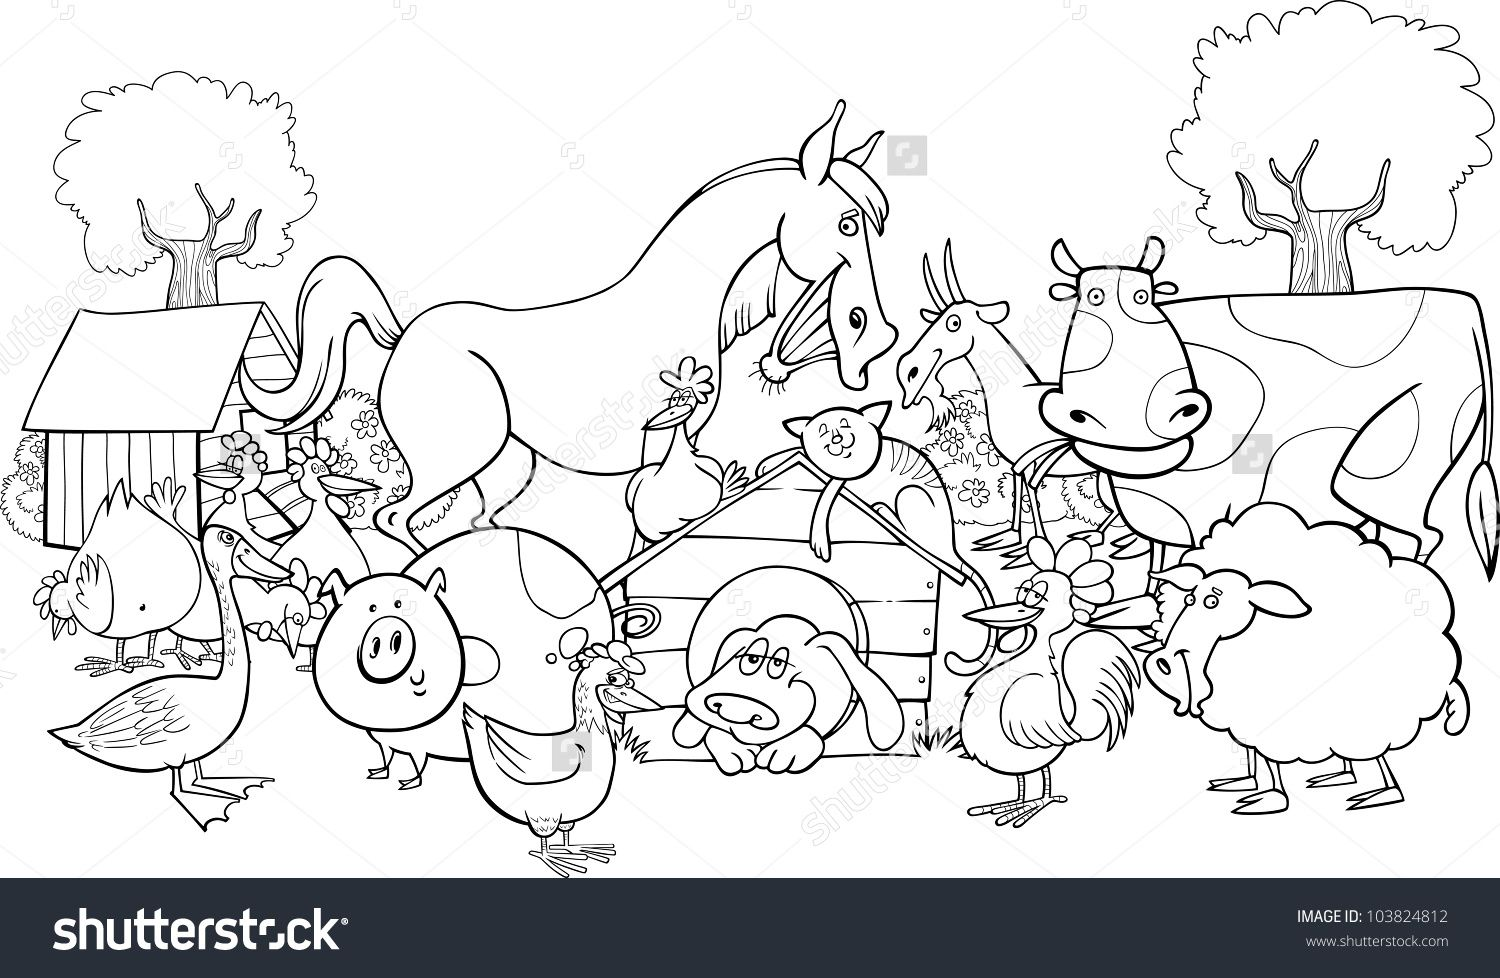 Cartoon Illustration Of Farm Animals Group For Coloring Group Farm Animal Coloring Pages Farm Coloring Pages Animal Coloring Pages